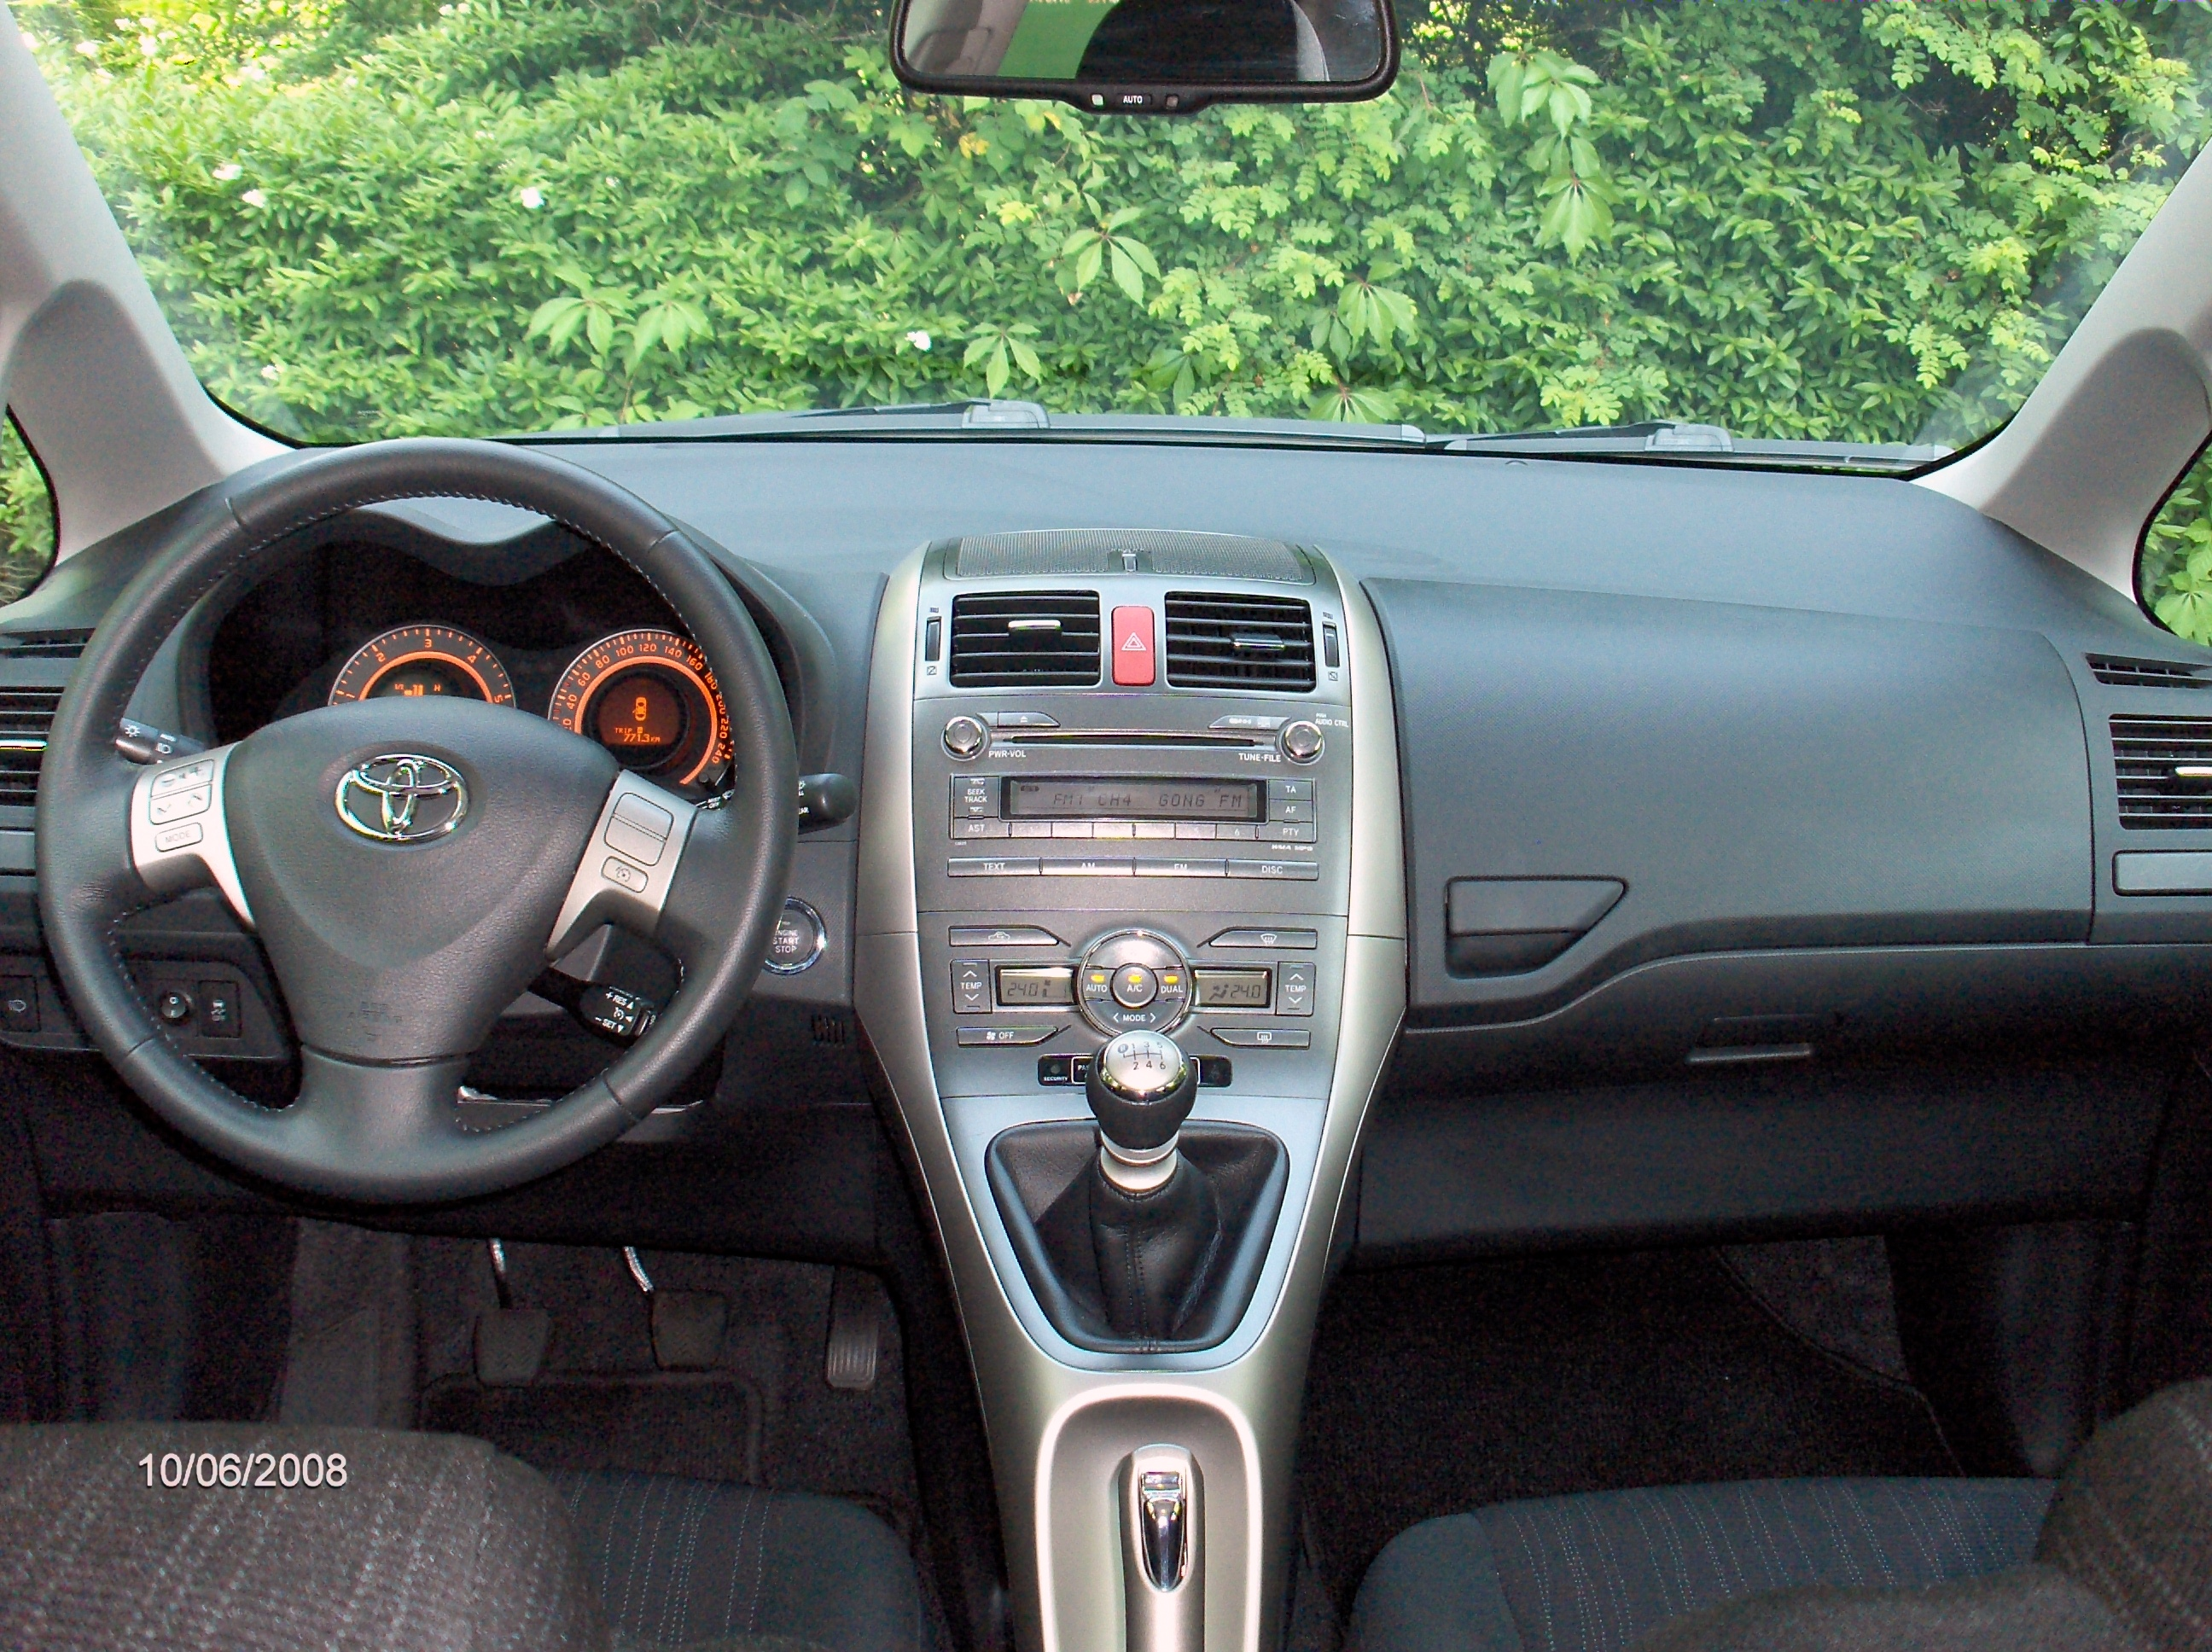 file toyota auris interieur 1 jpg wikimedia commons. Black Bedroom Furniture Sets. Home Design Ideas